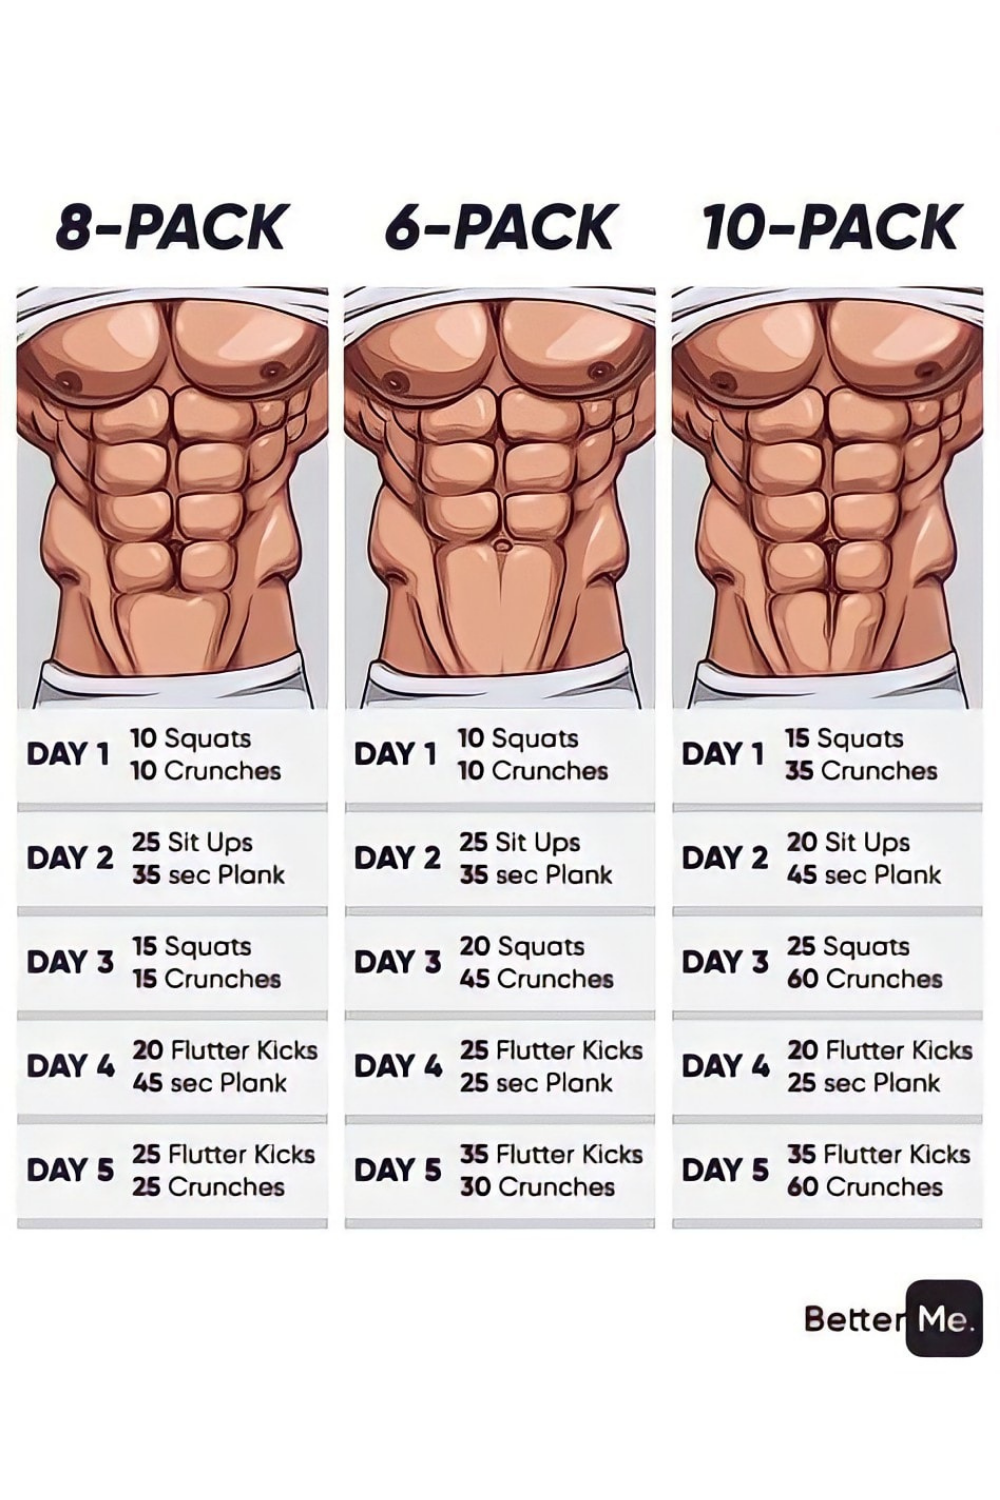 How Can I Get A Six Pack Abs Fast Best 6 Pack Workout Fitness Rapid Abs Workout Workout Challenge Six Pack Abs Workout